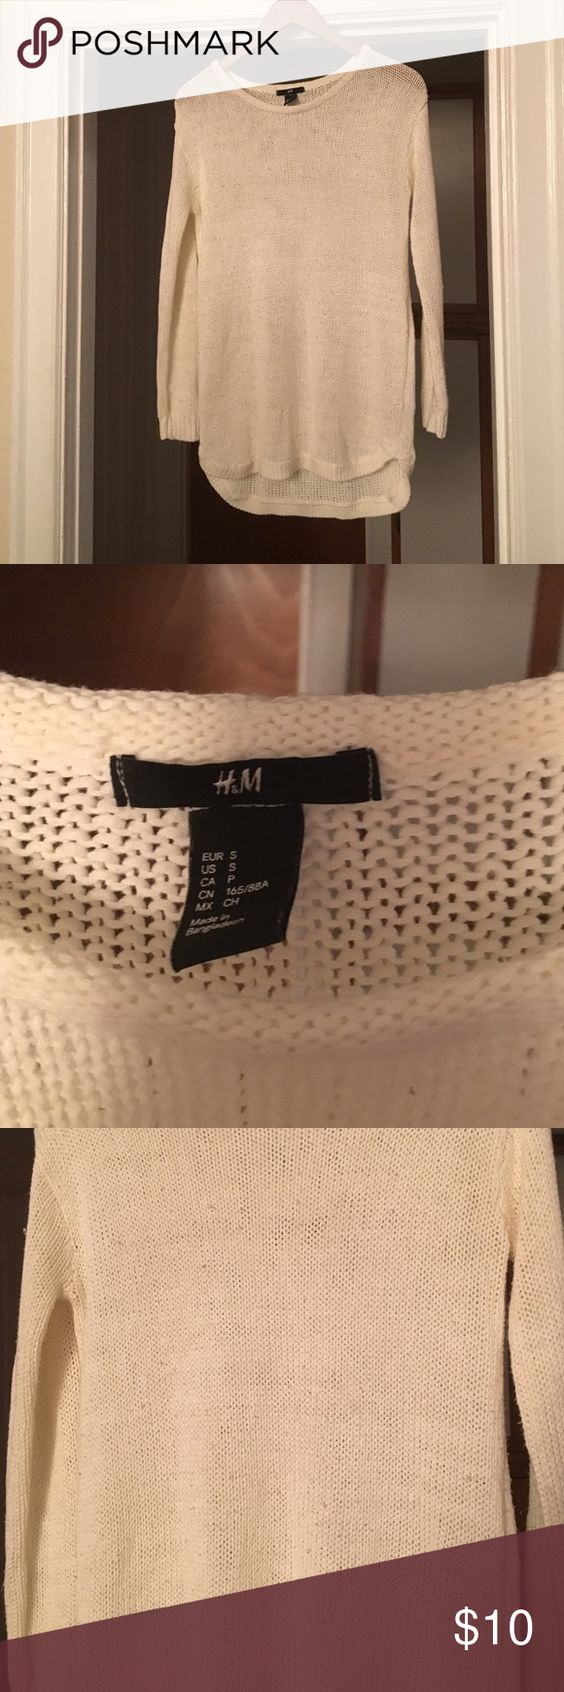 White sweater Some wear but so comfy H&M Sweaters Crew & Scoop Necks